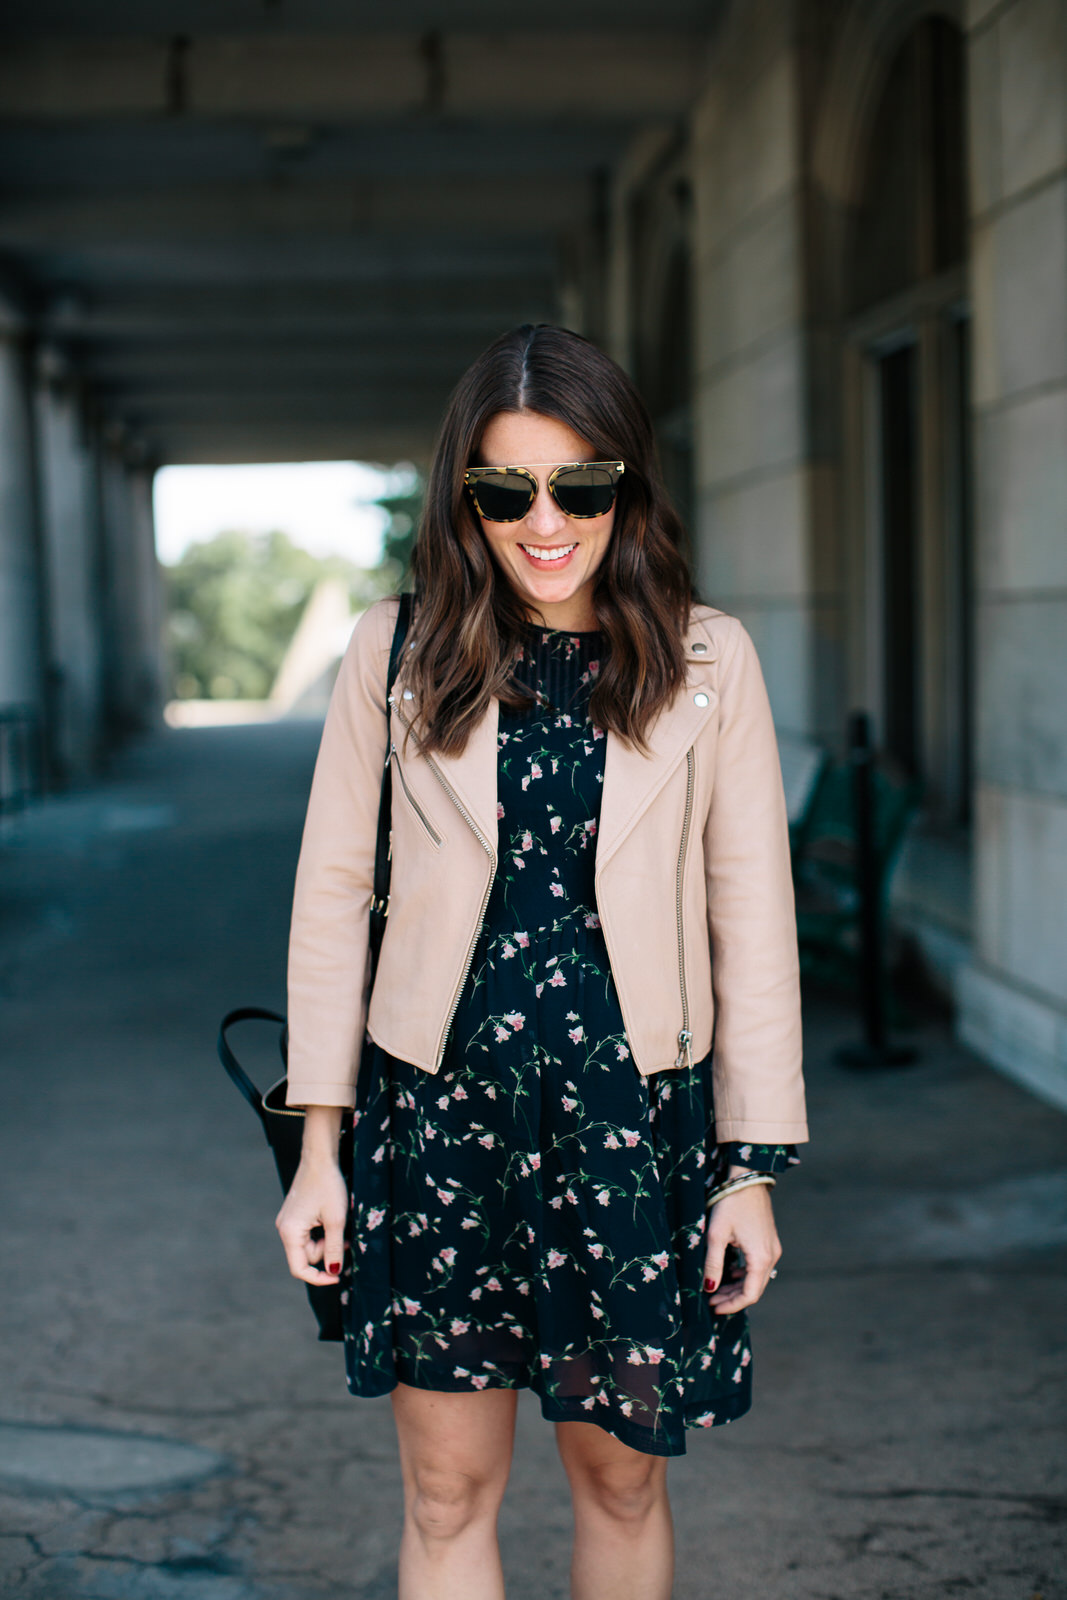 Liz Adams answers your questions about fall fashion and what to wear.